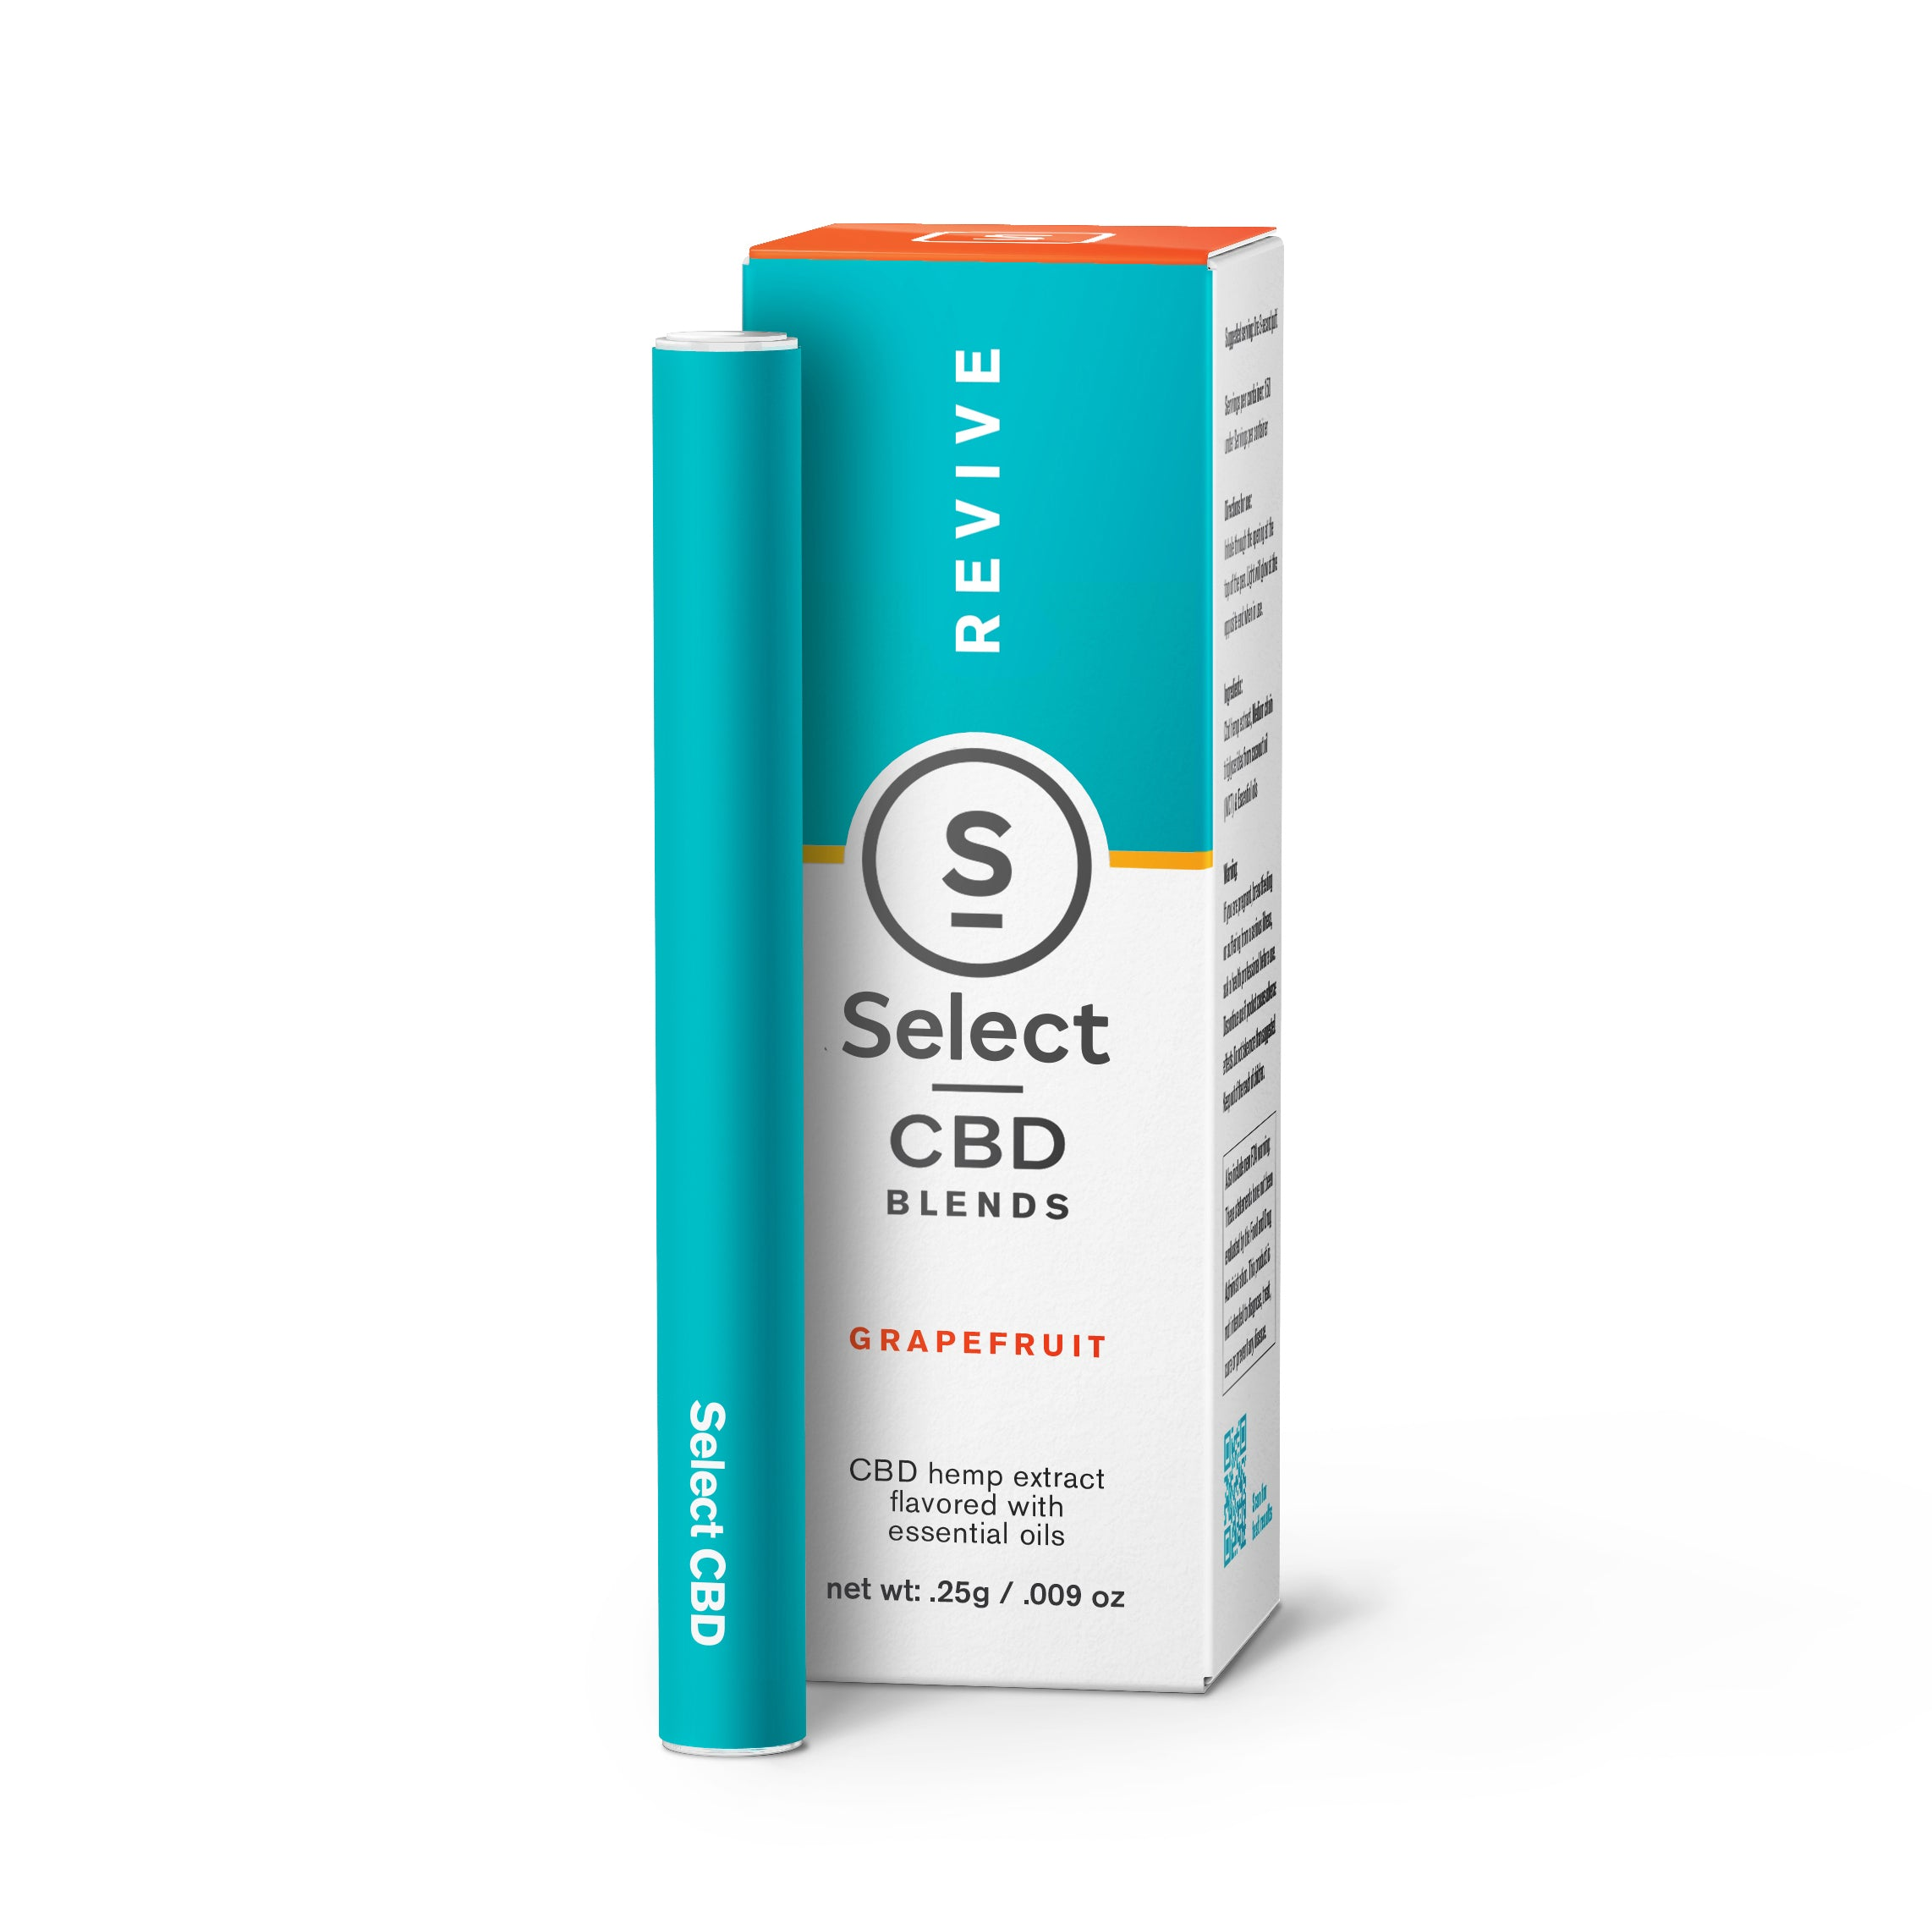 Select CBD Disposable Vape Pens 125MG - Lake shore vibe